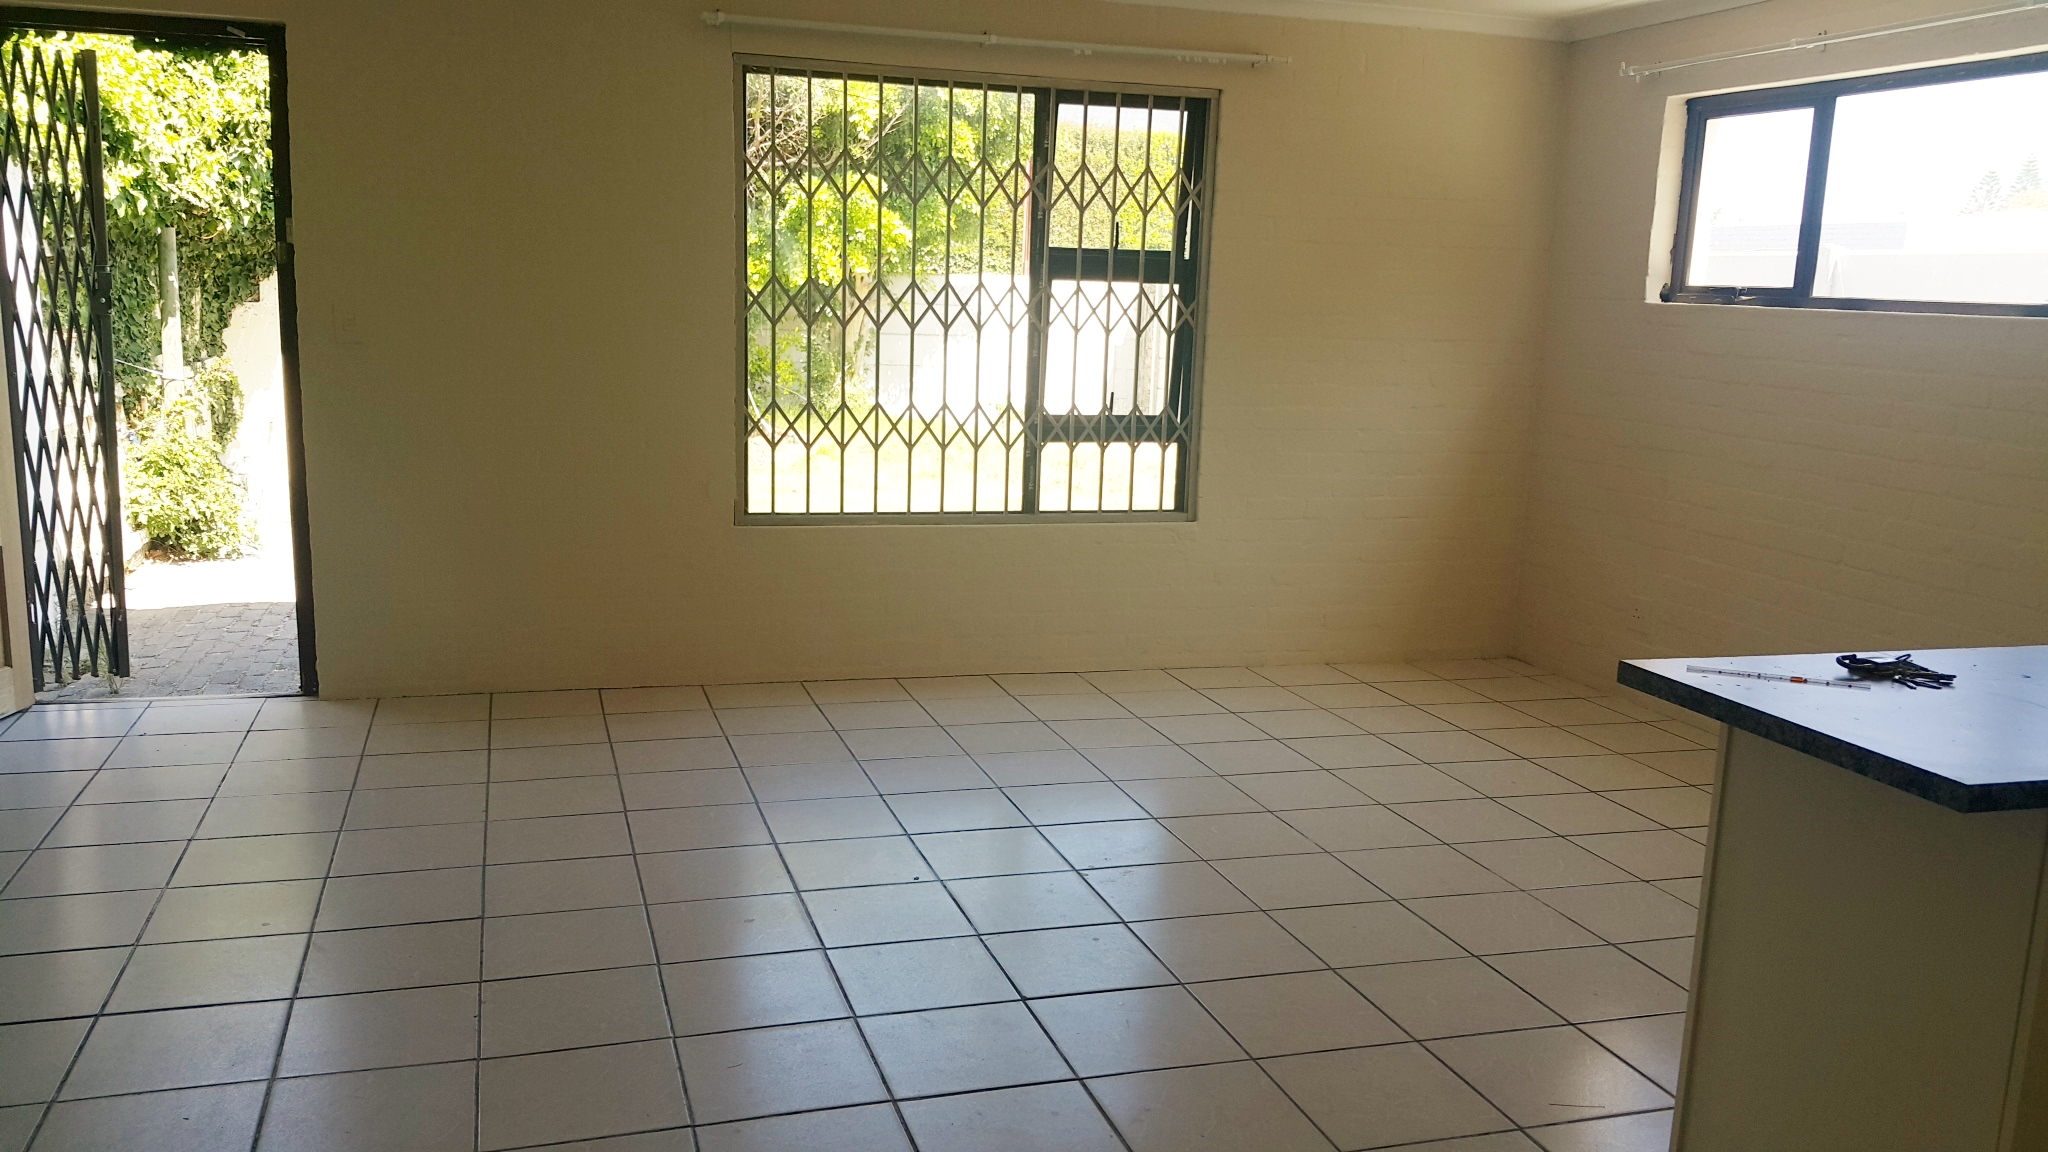 2 bedroom semi – Rondebosch East    R7900.00